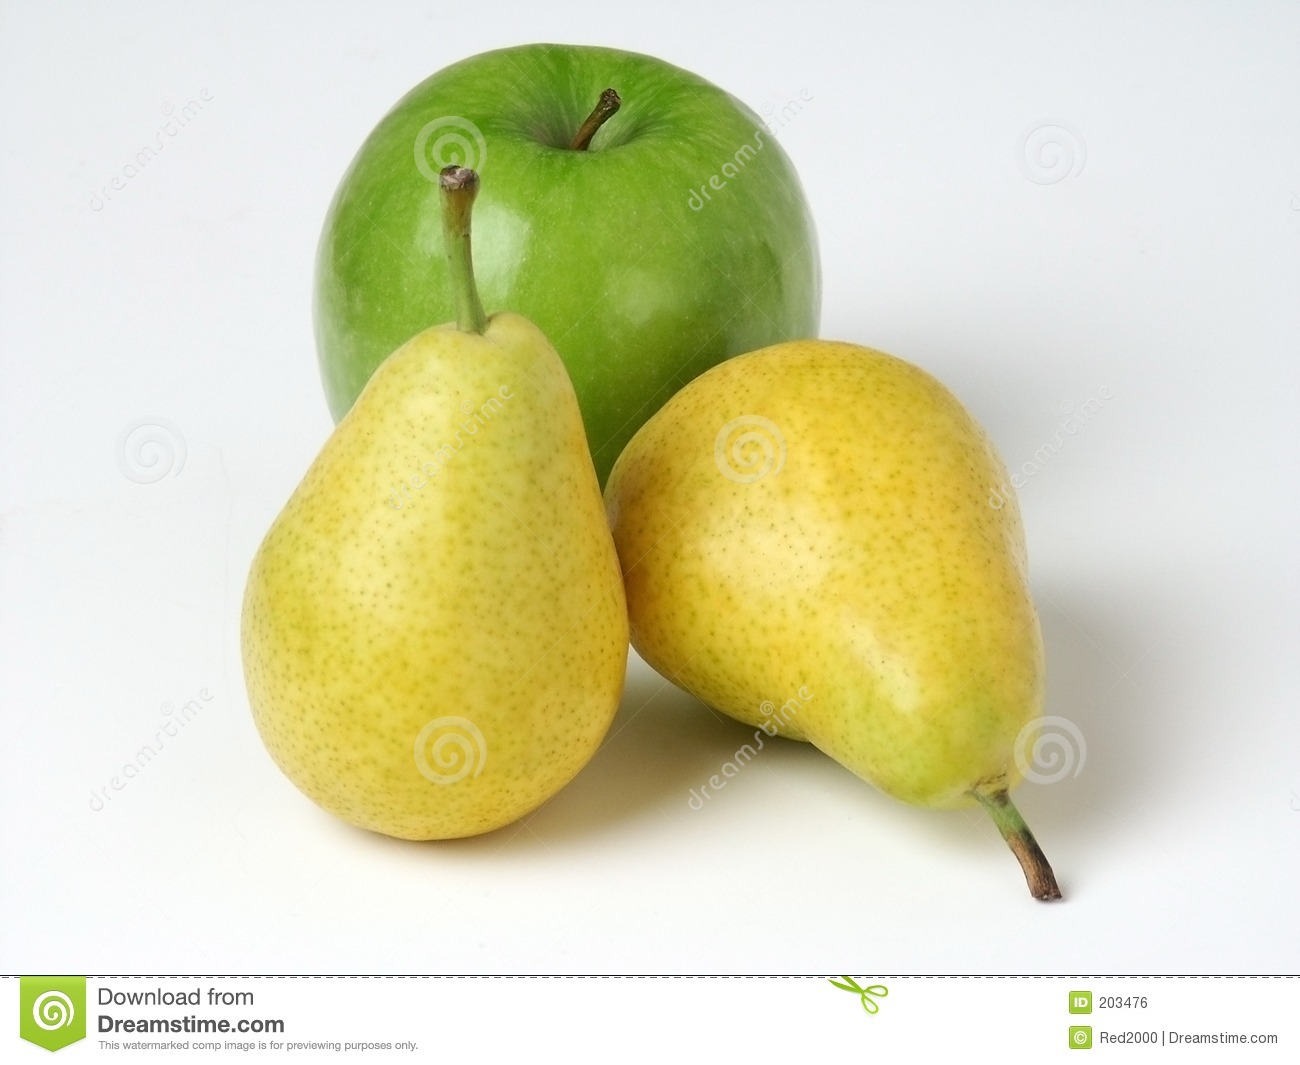 Pears & Apple